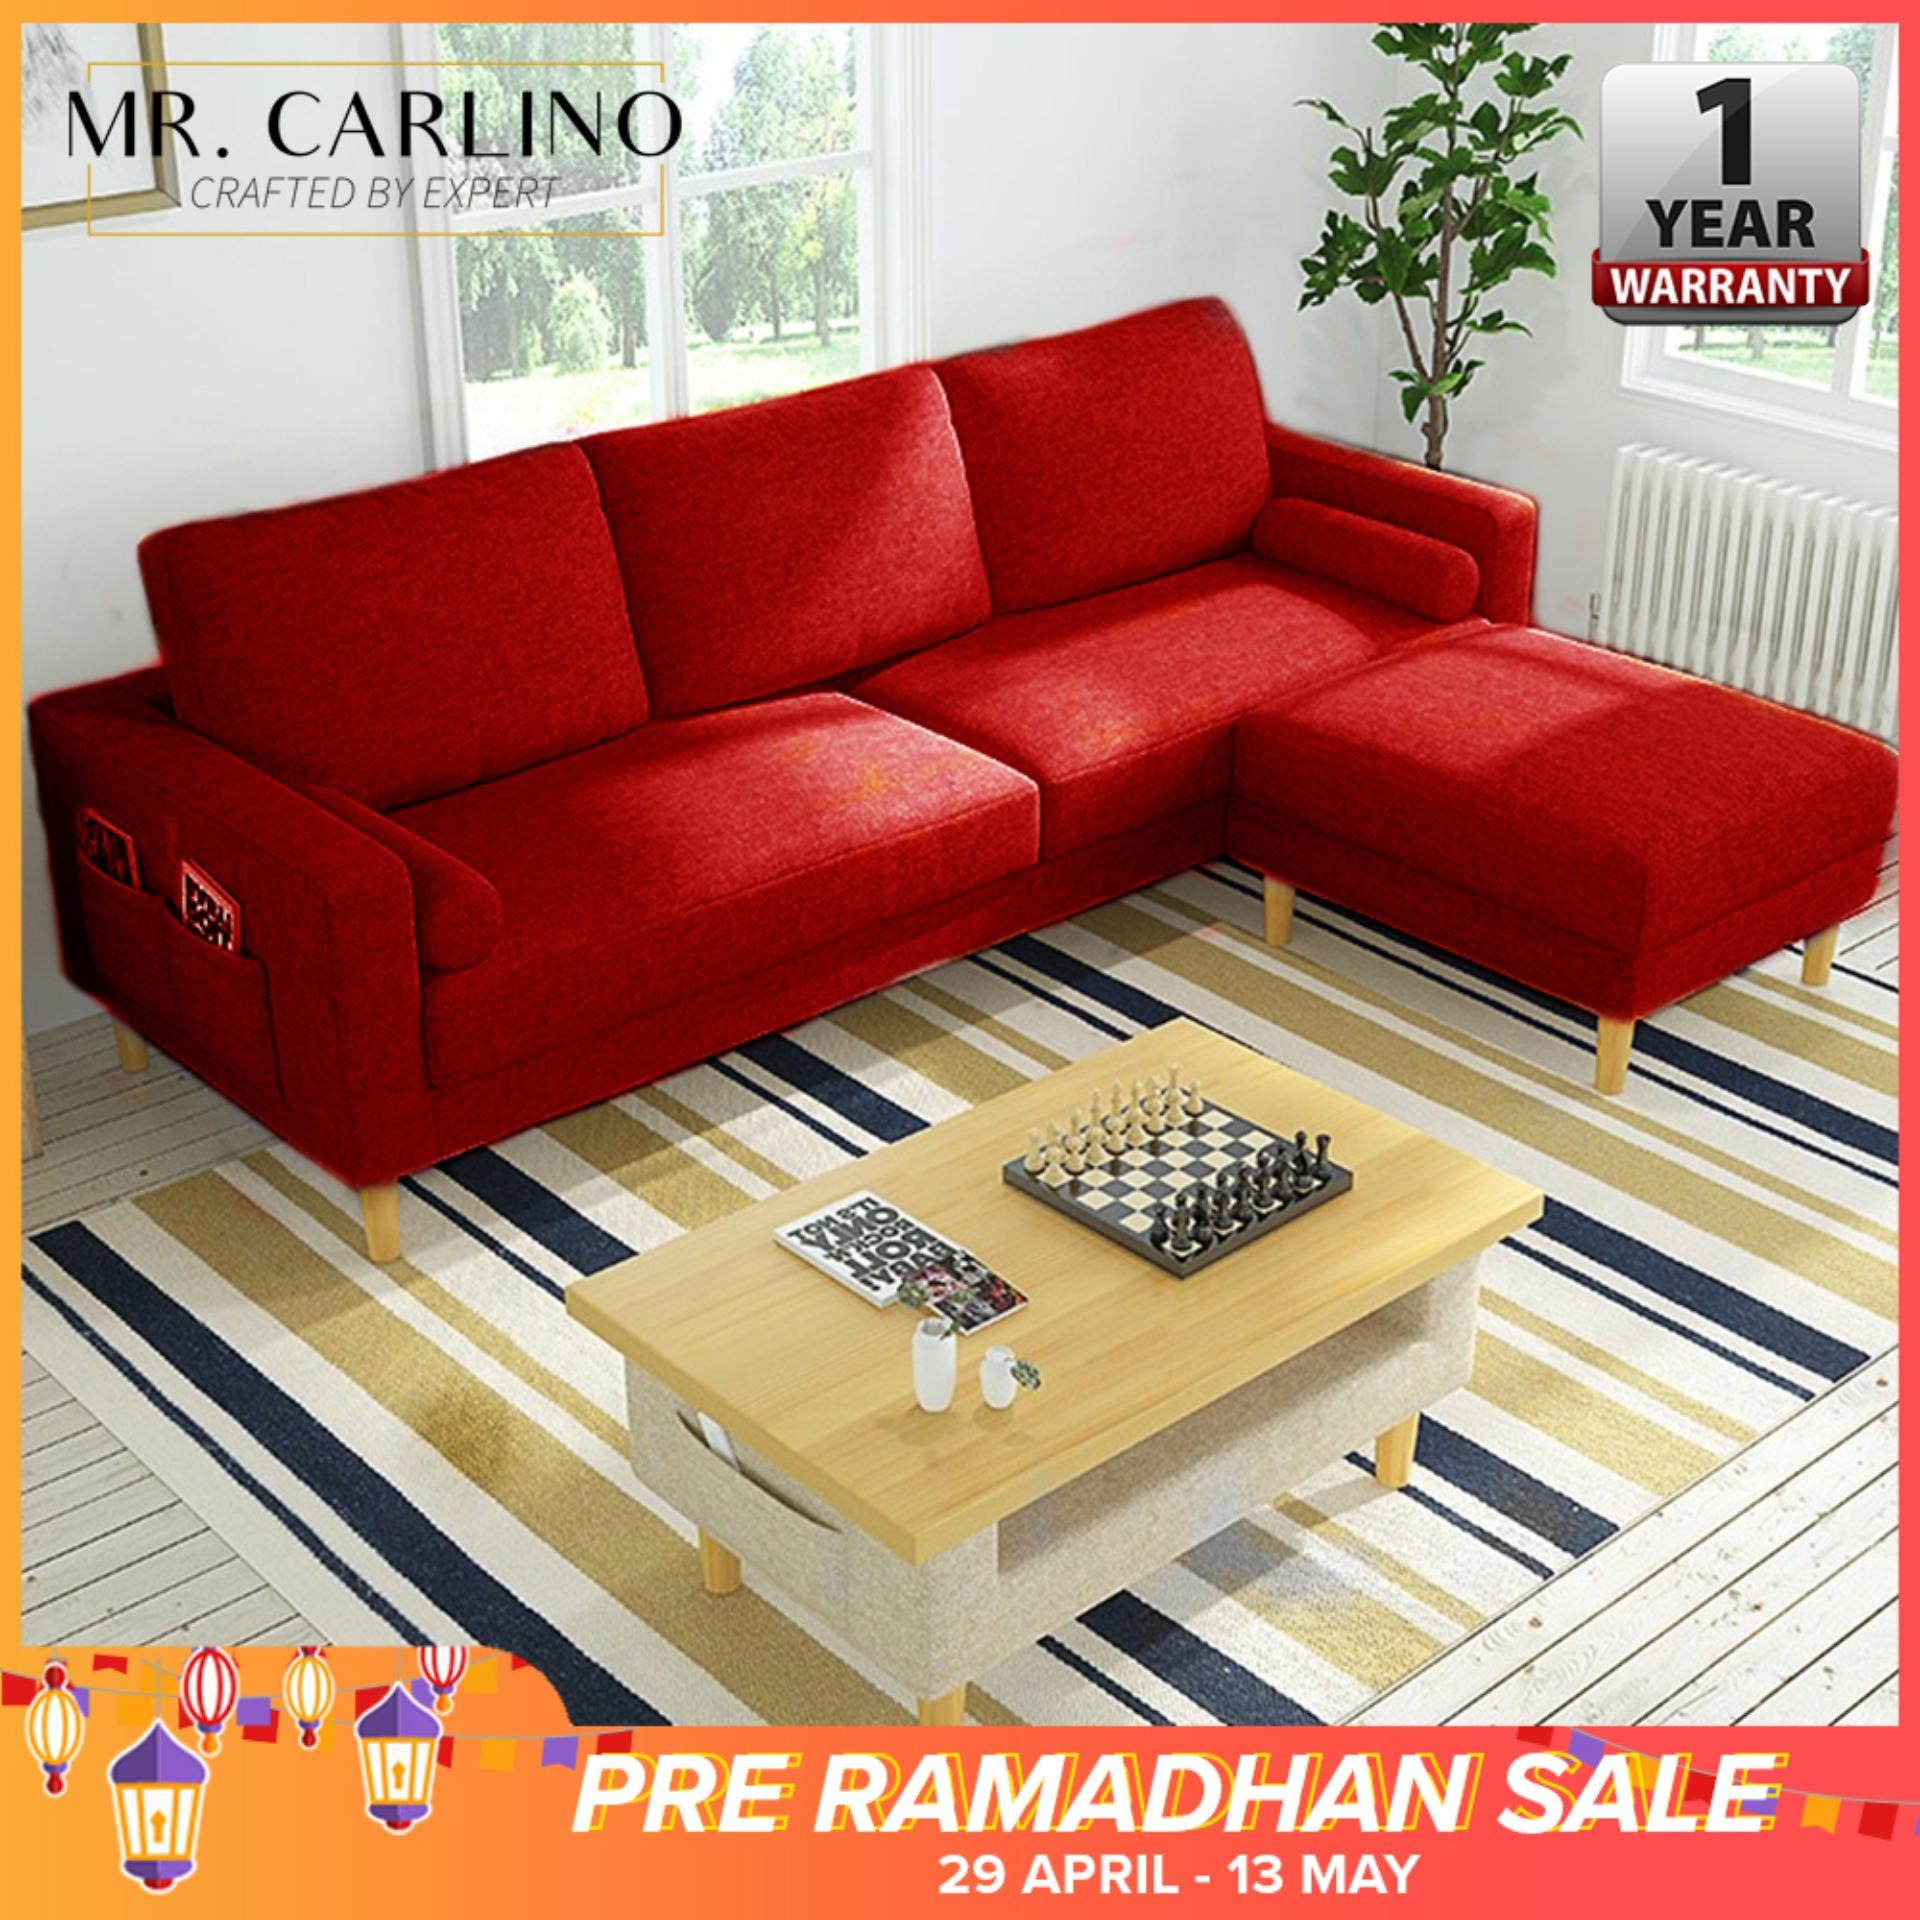 Vargas 3 Seater Canvas Cloth Home & Living Room L Shaped Sofa With [ 1 Year Warranty] By Casa Muebles.